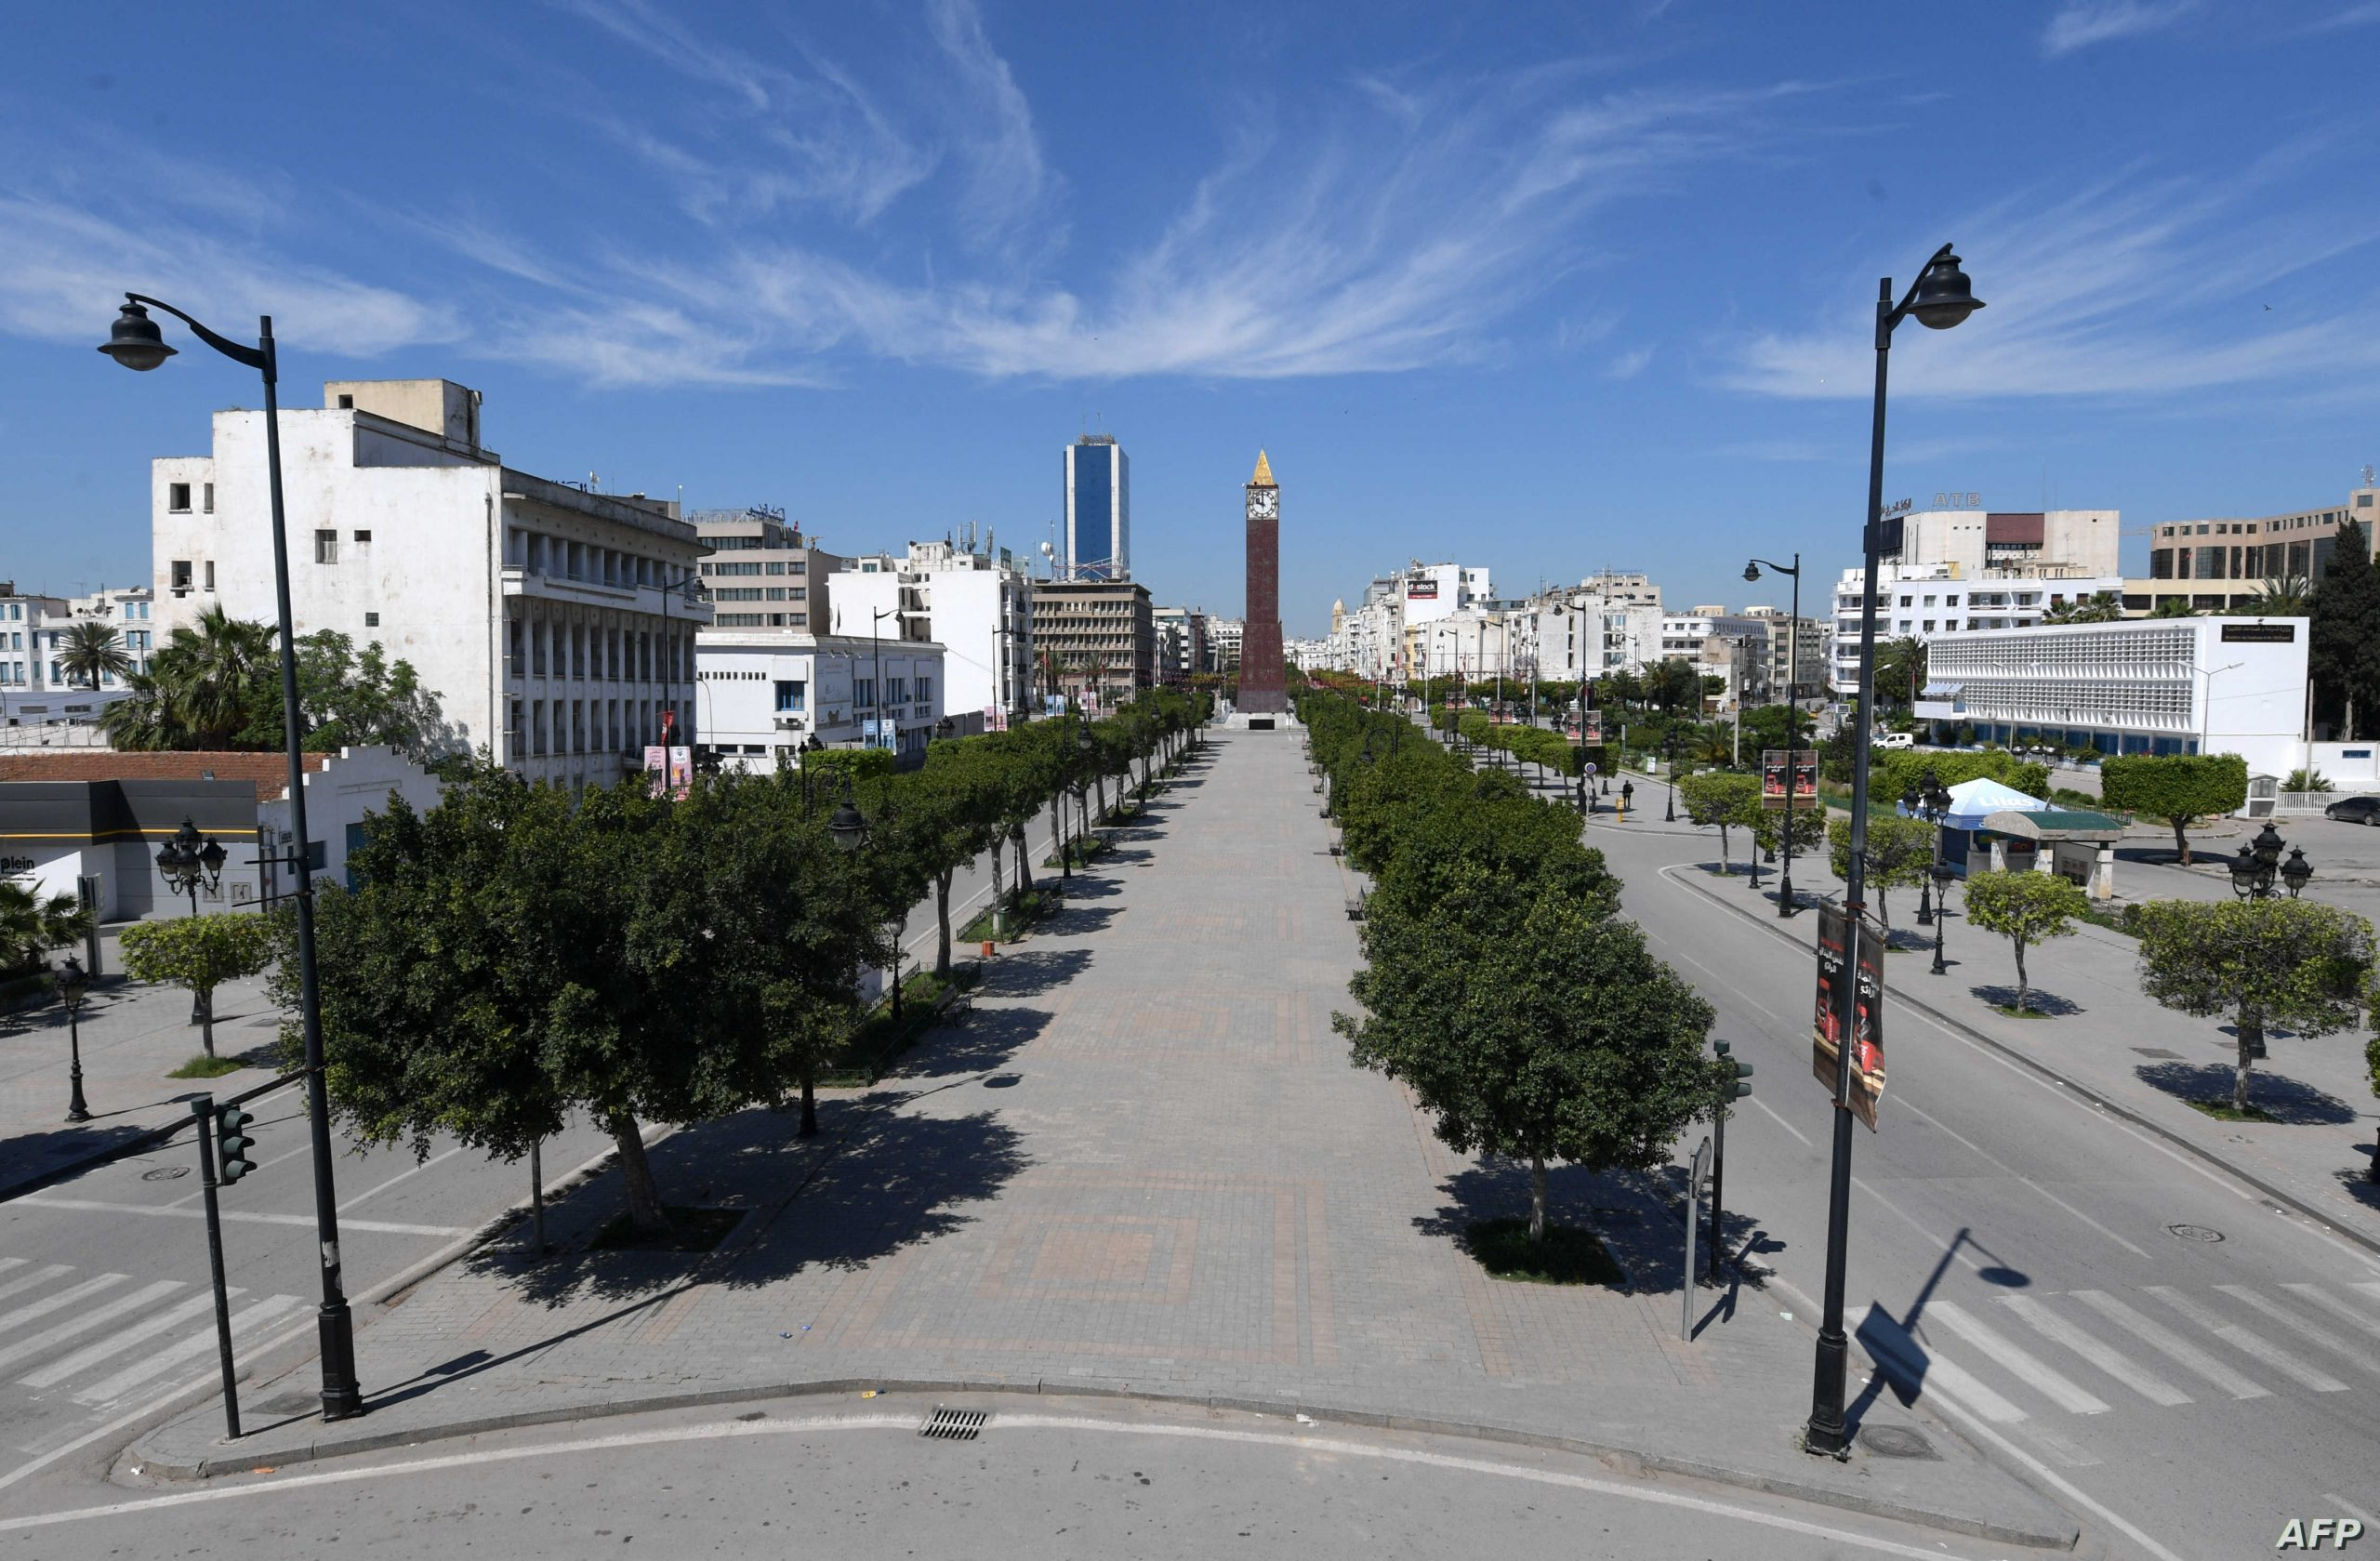 Our embassy in Tunisia calls for caution and prudence and to stay away from crowded places